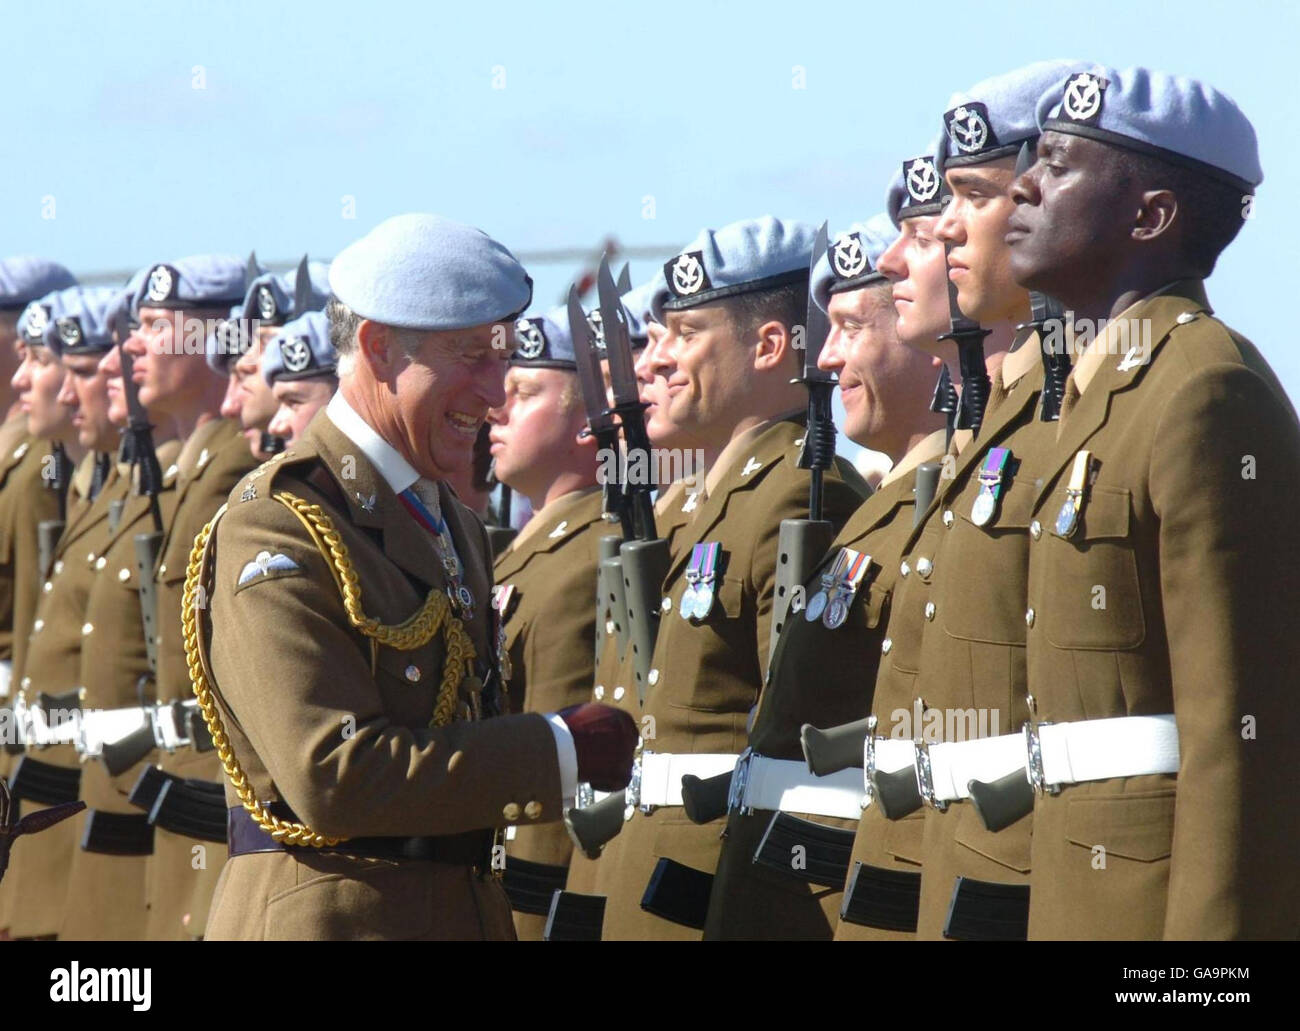 The Prince of Wales attends the Army Air Corps' golden jubilee Stock Photo